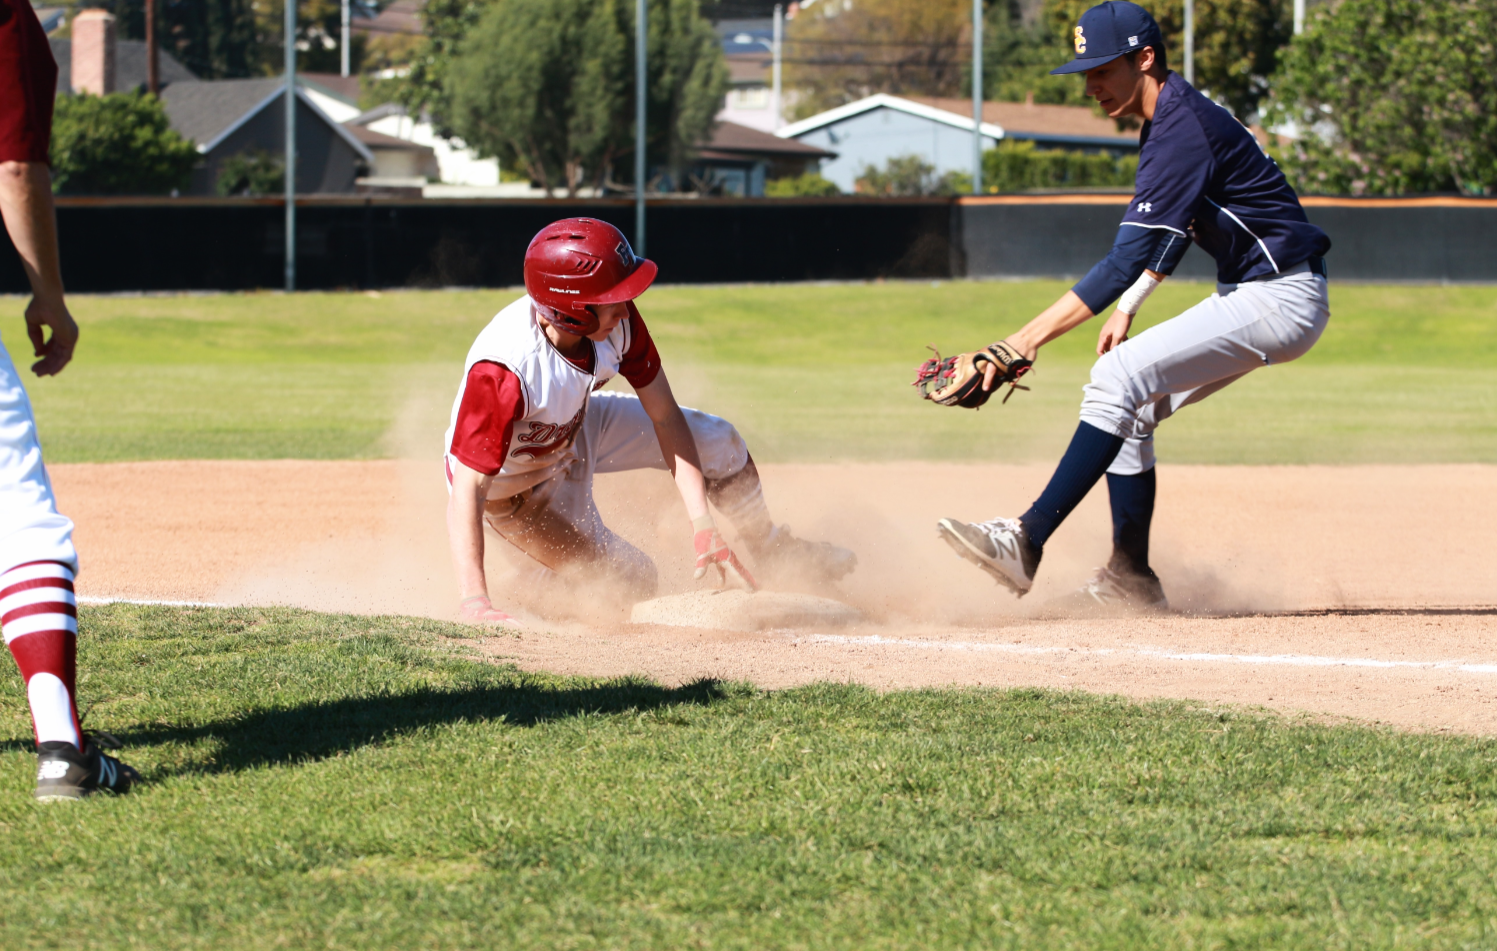 Fueled by sixth-inning rally, boys' baseball tops Santa Clara